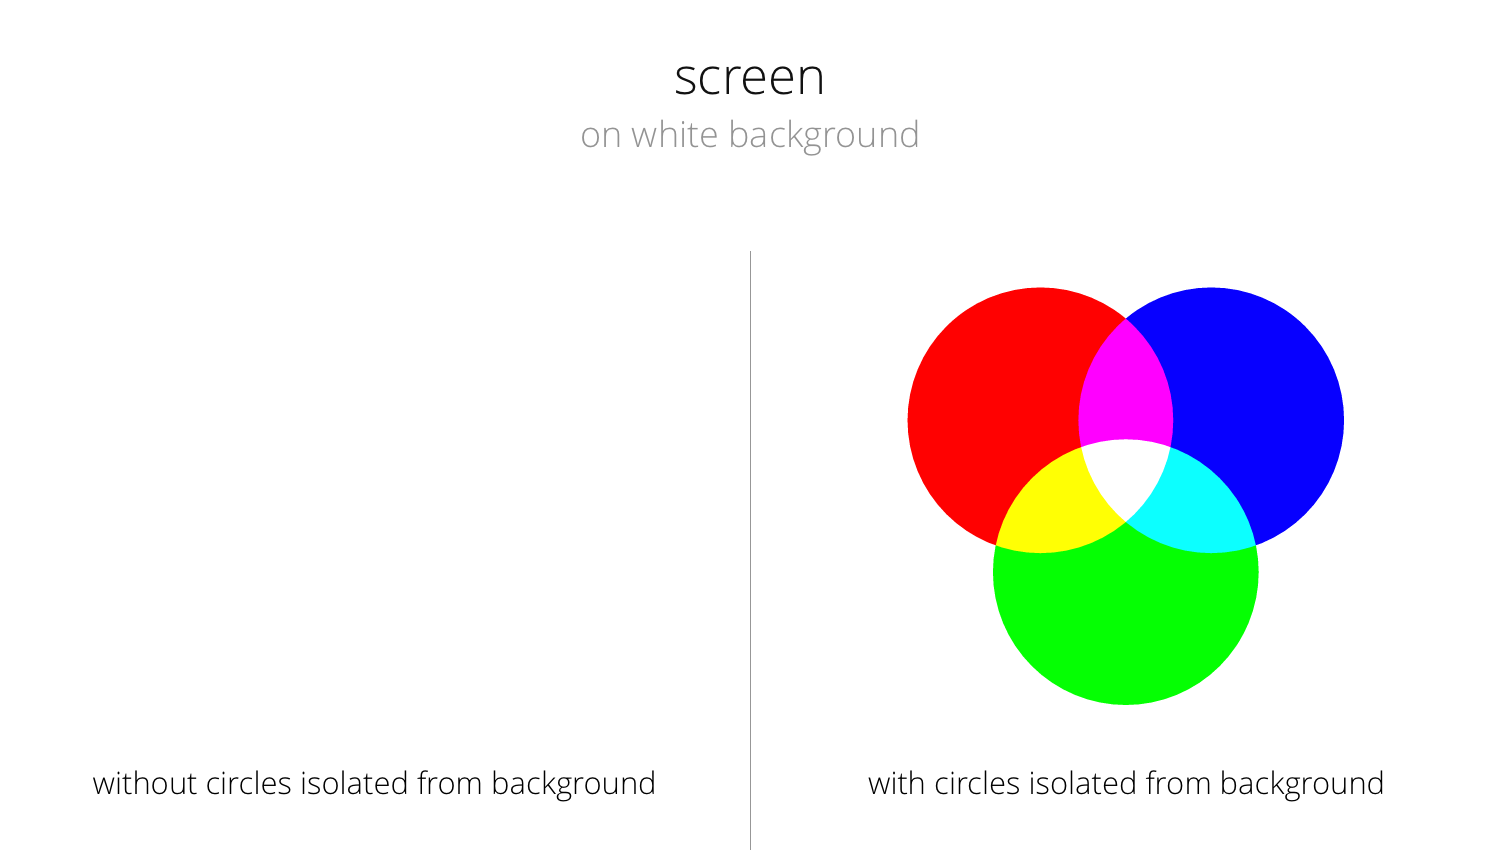 The effect of setting an 'isolate' depends on the blend mode and background color